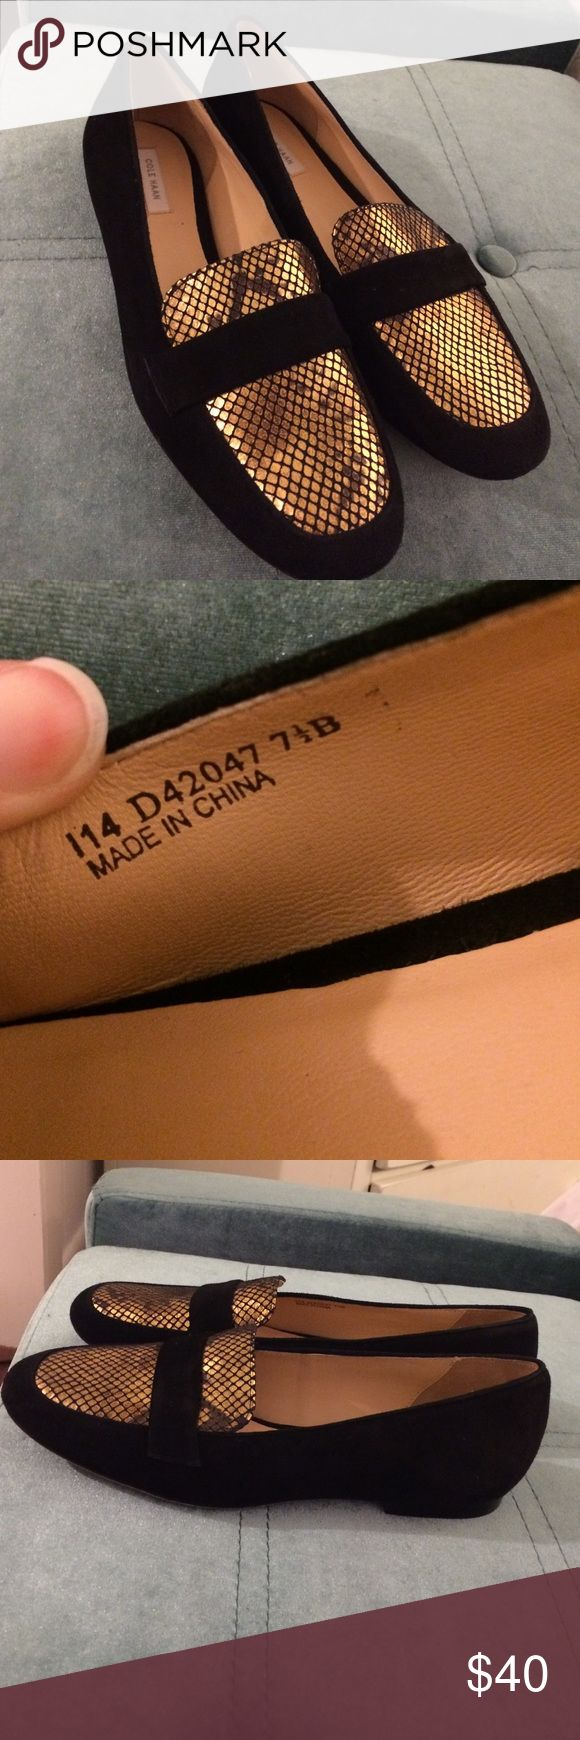 Cole Haan Black Suede and Gold Loafer Flats Sz 7.5 Never worn! Some discoloration in bottom from being tried on in store, marks from store on bottom otherwise excellent! Size 7.5 Cole Haan Shoes Flats & Loafers